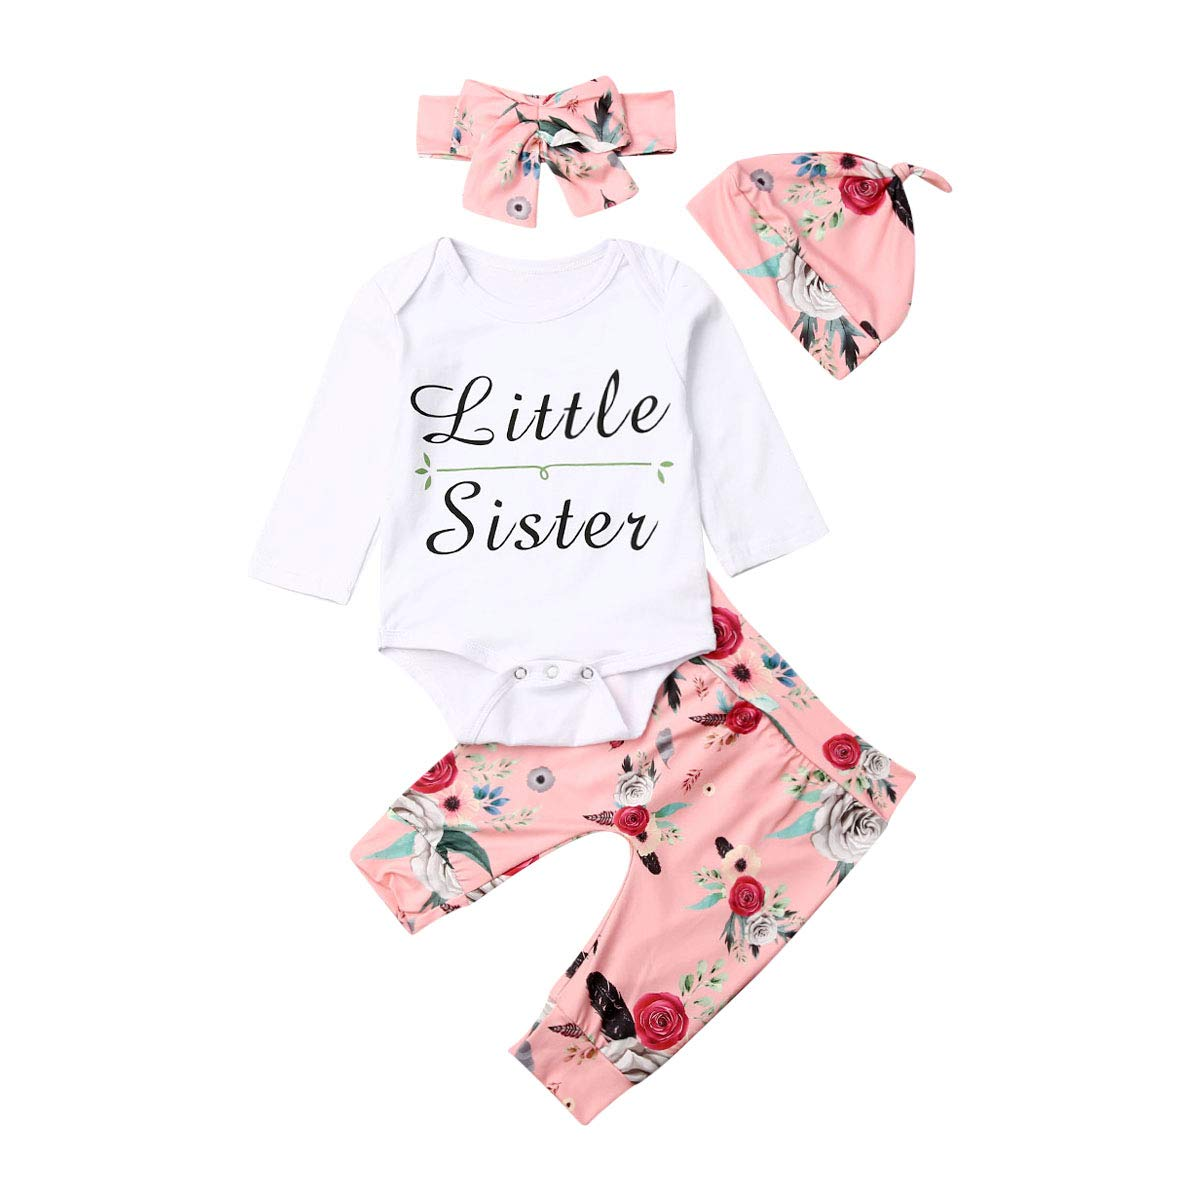 Infant Toddler Baby Girl Clothes Ruffle Romper Long Sleeve Floral Bowknot Pants Bodysuit Outfit Sets